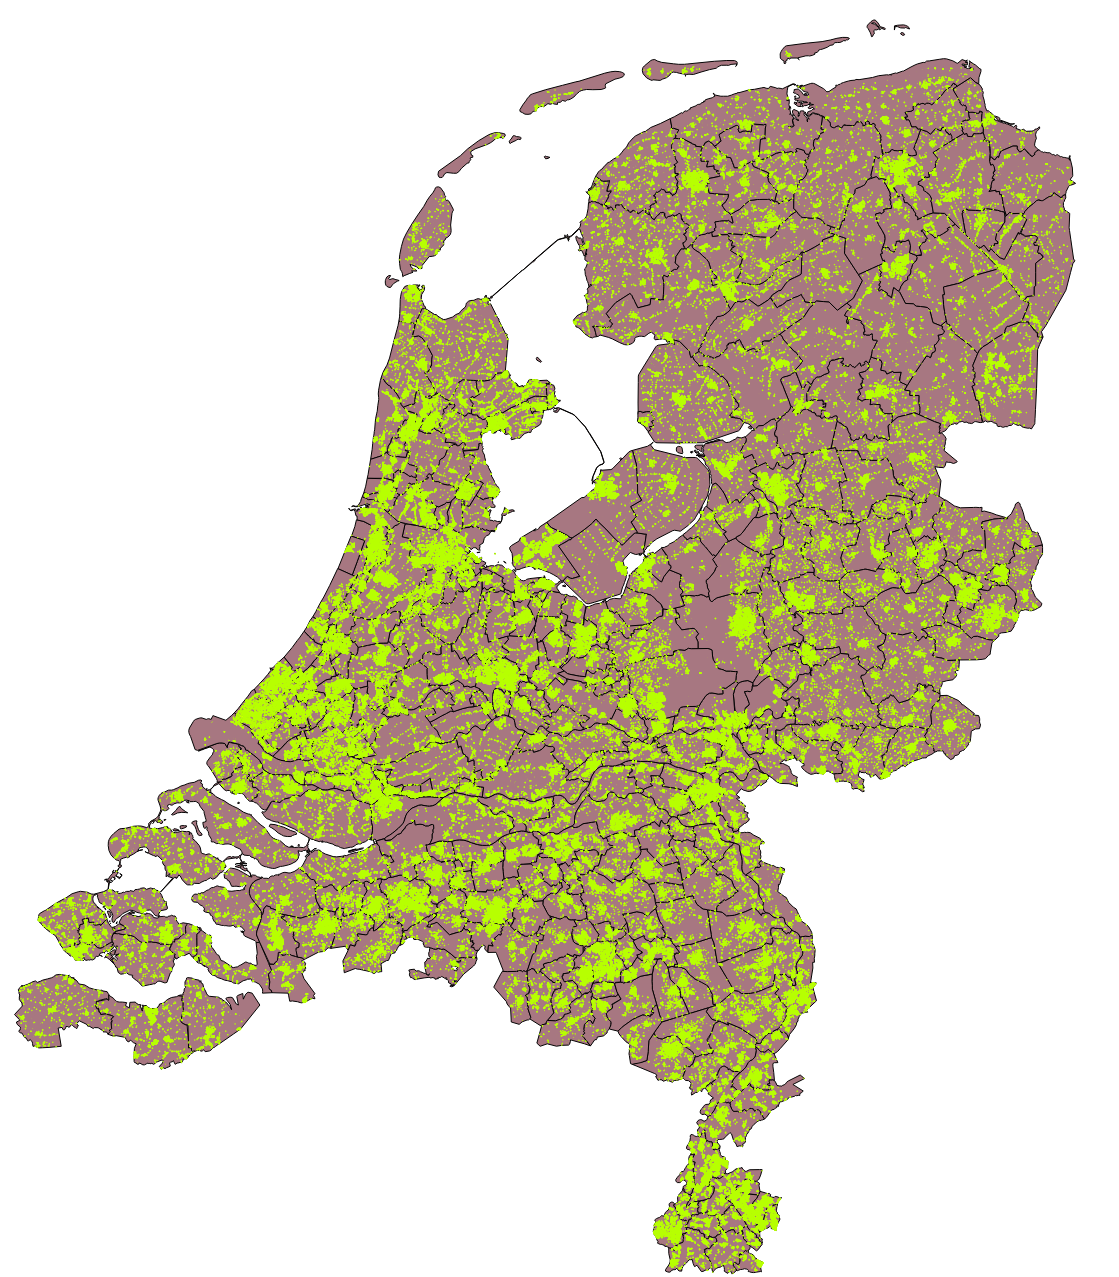 All solar panels within the Netherlands